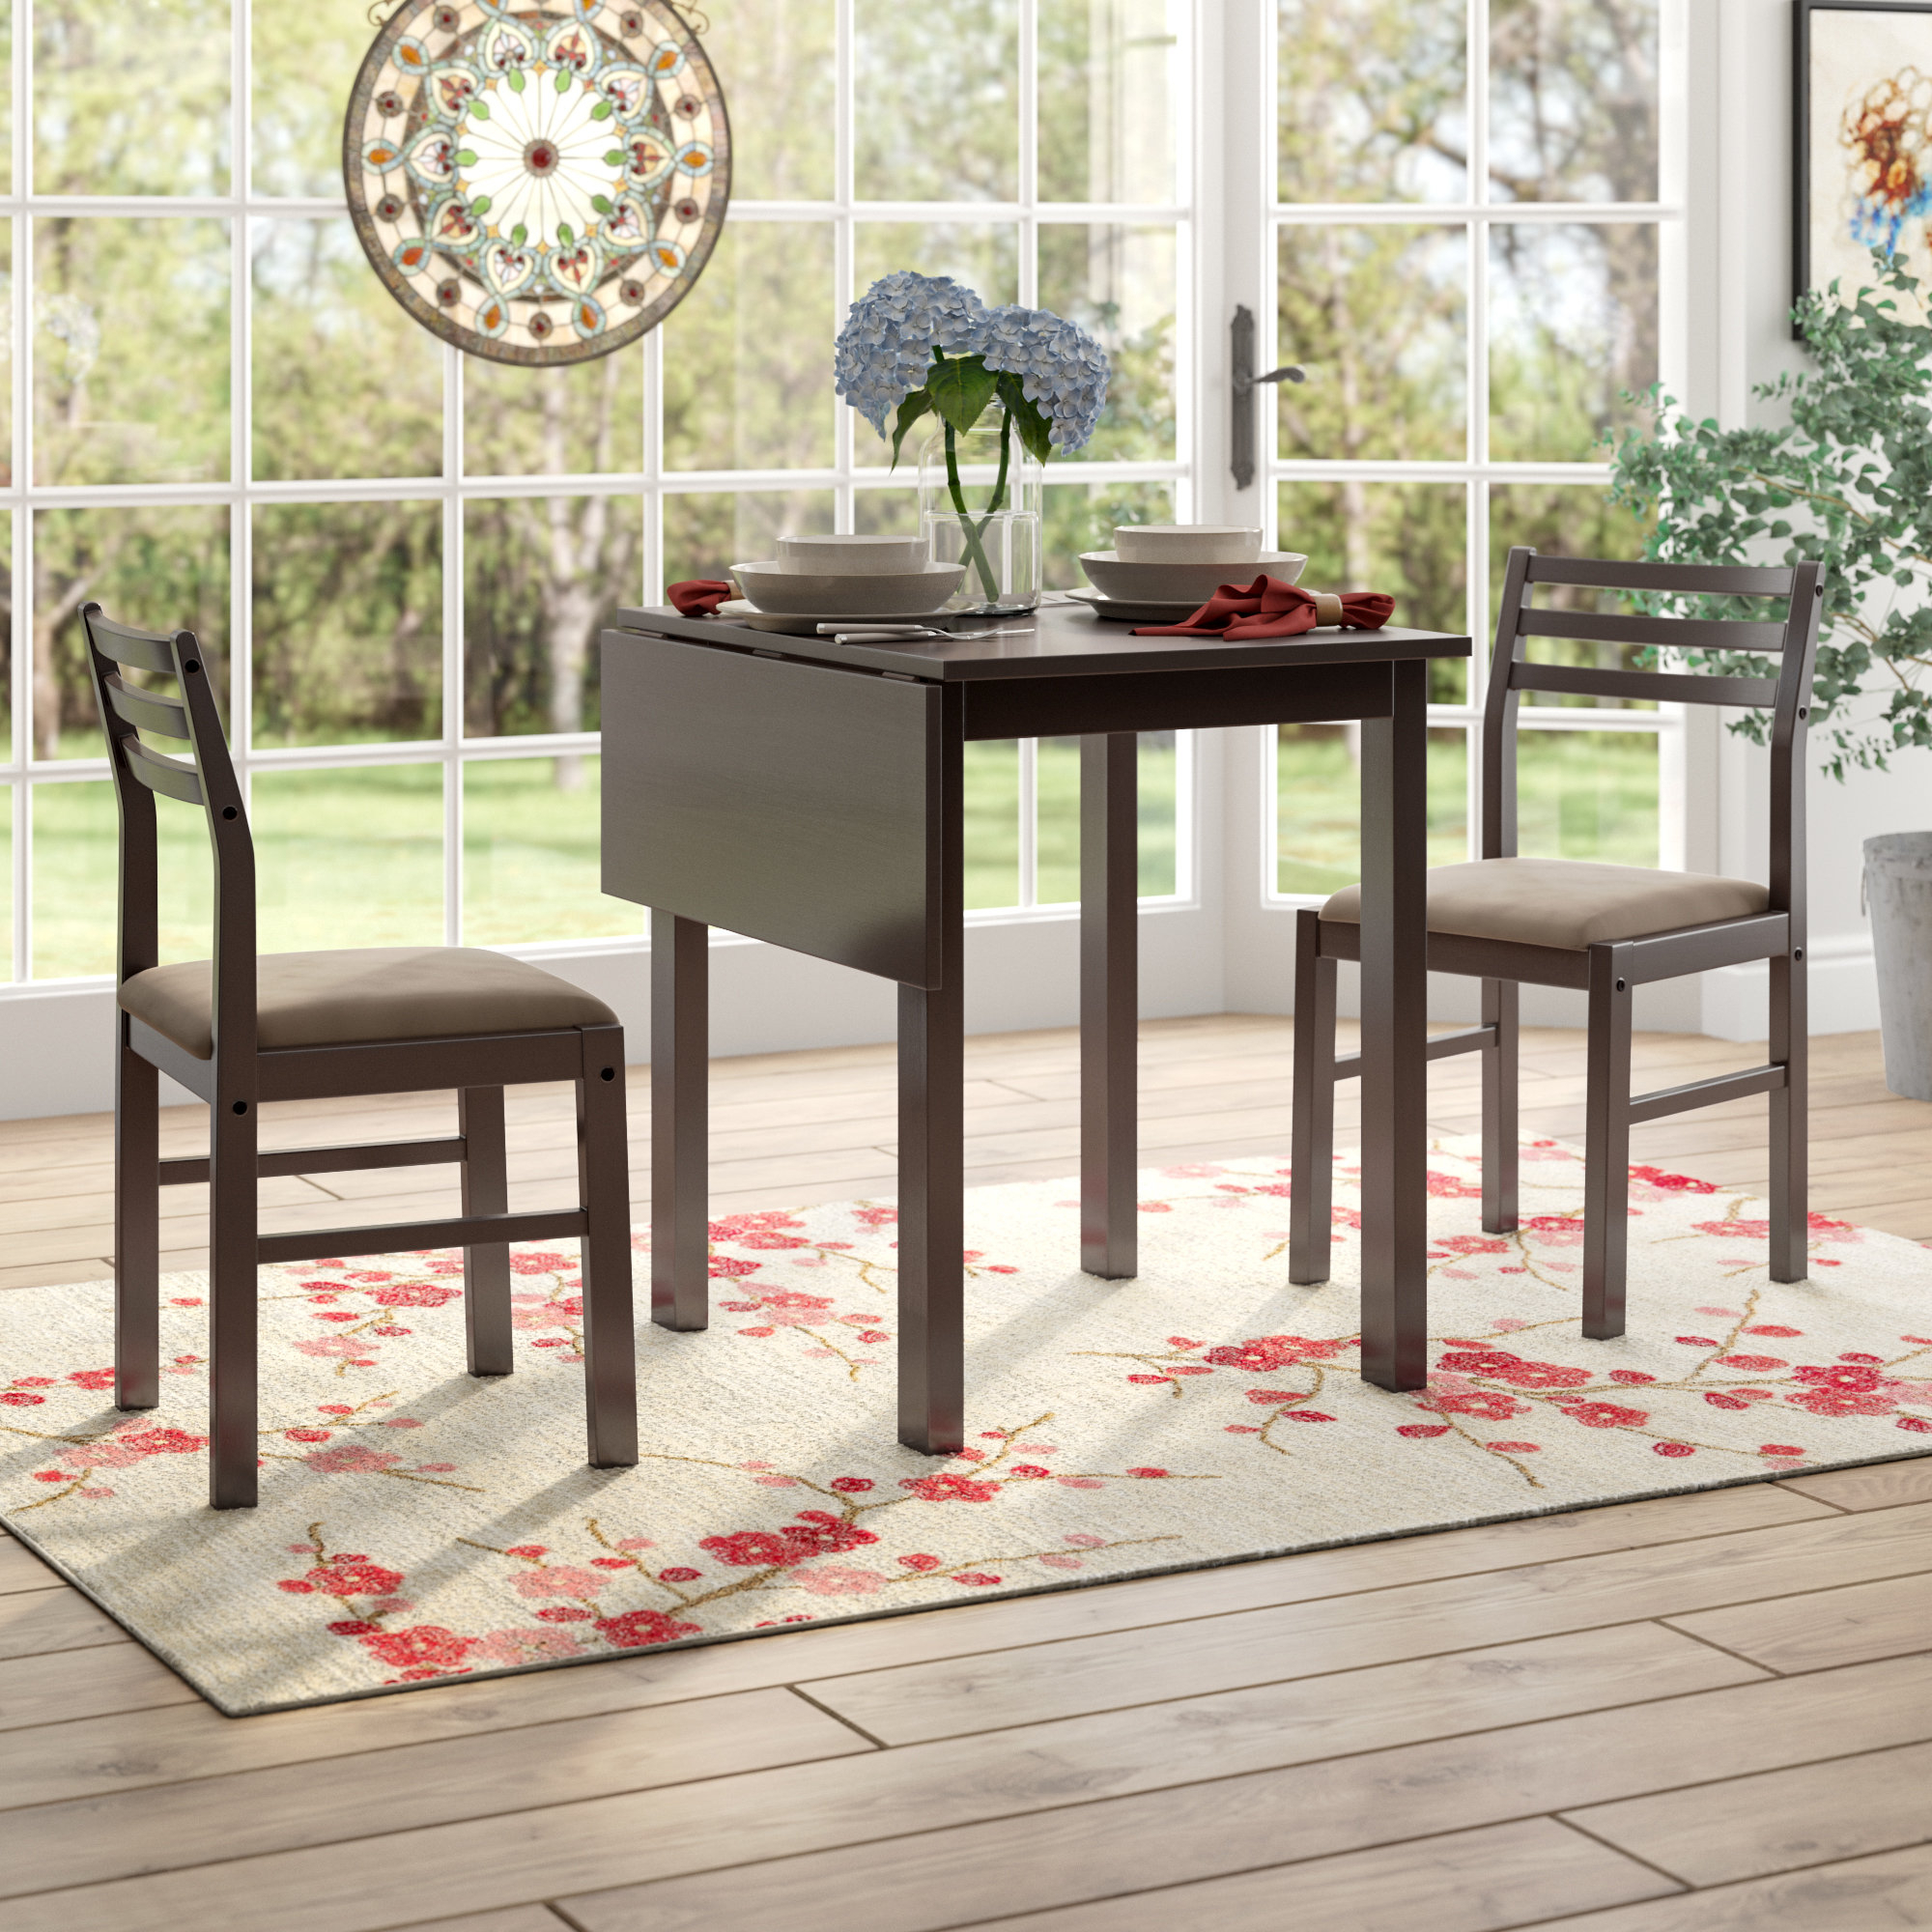 Wayfair With Regard To Famous Penelope 3 Piece Counter Height Wood Dining Sets (#17 of 20)